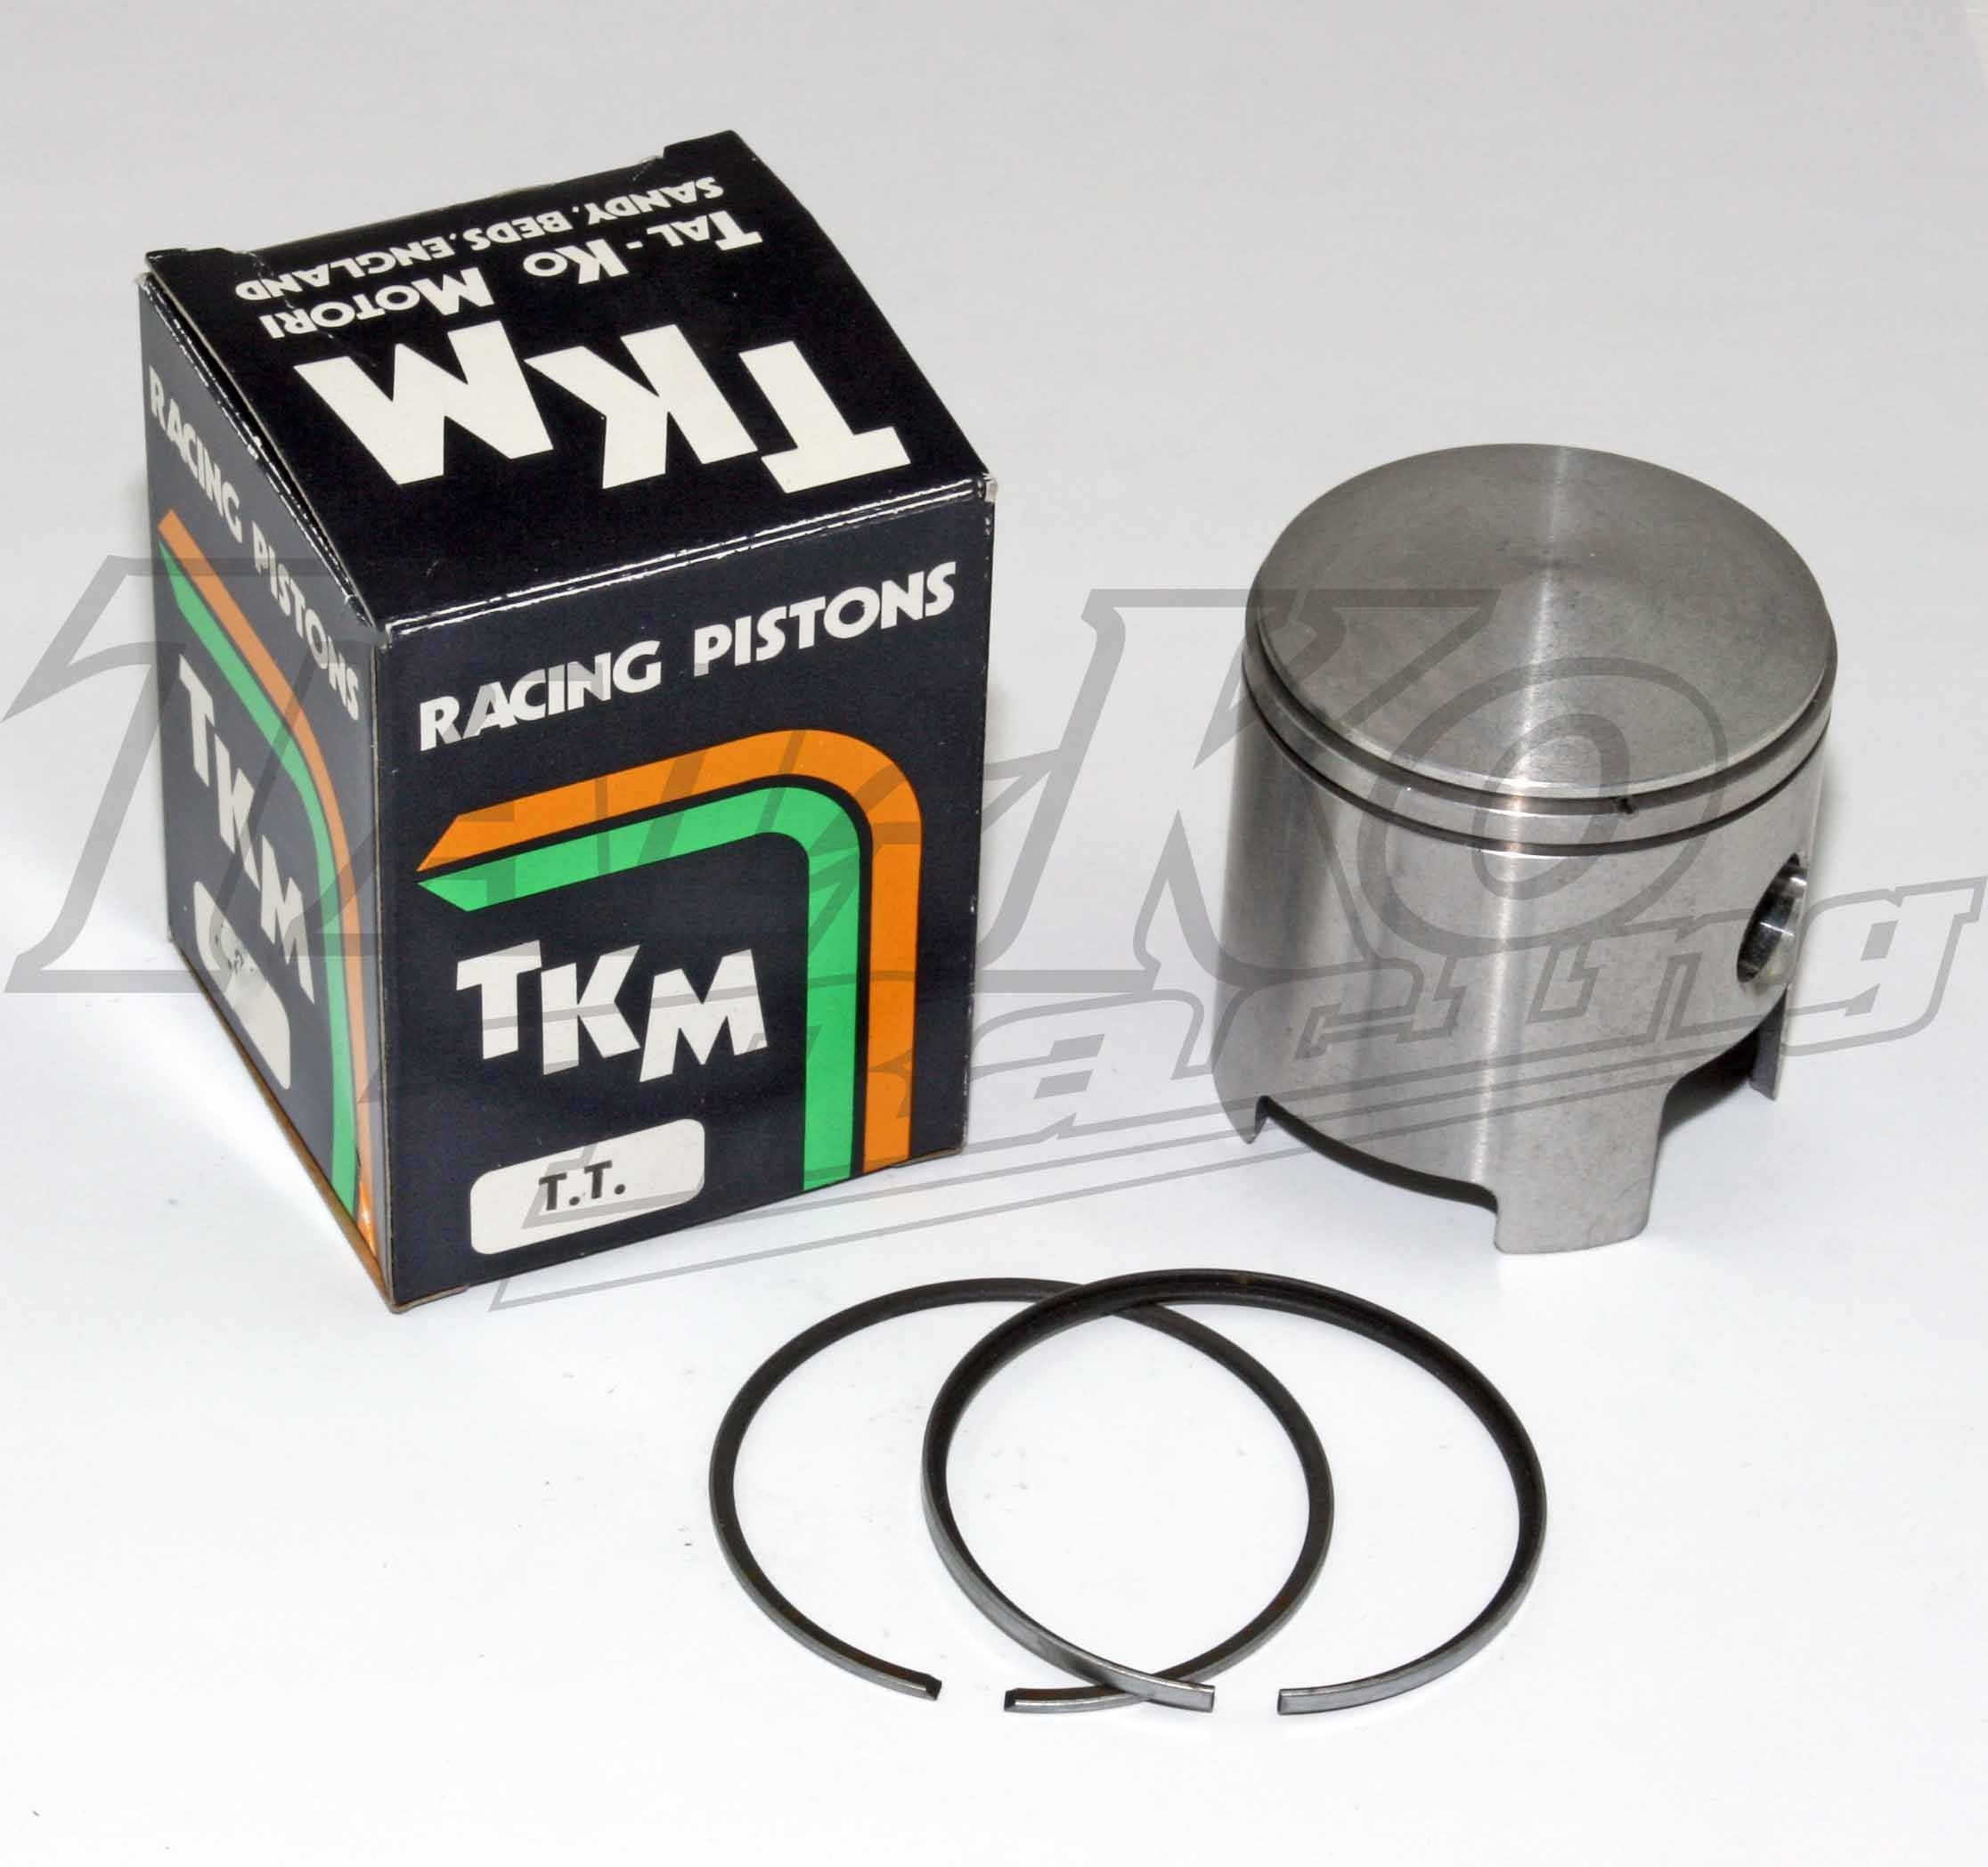 TKM TT PISTON + TWIN RING SET 56.04mm